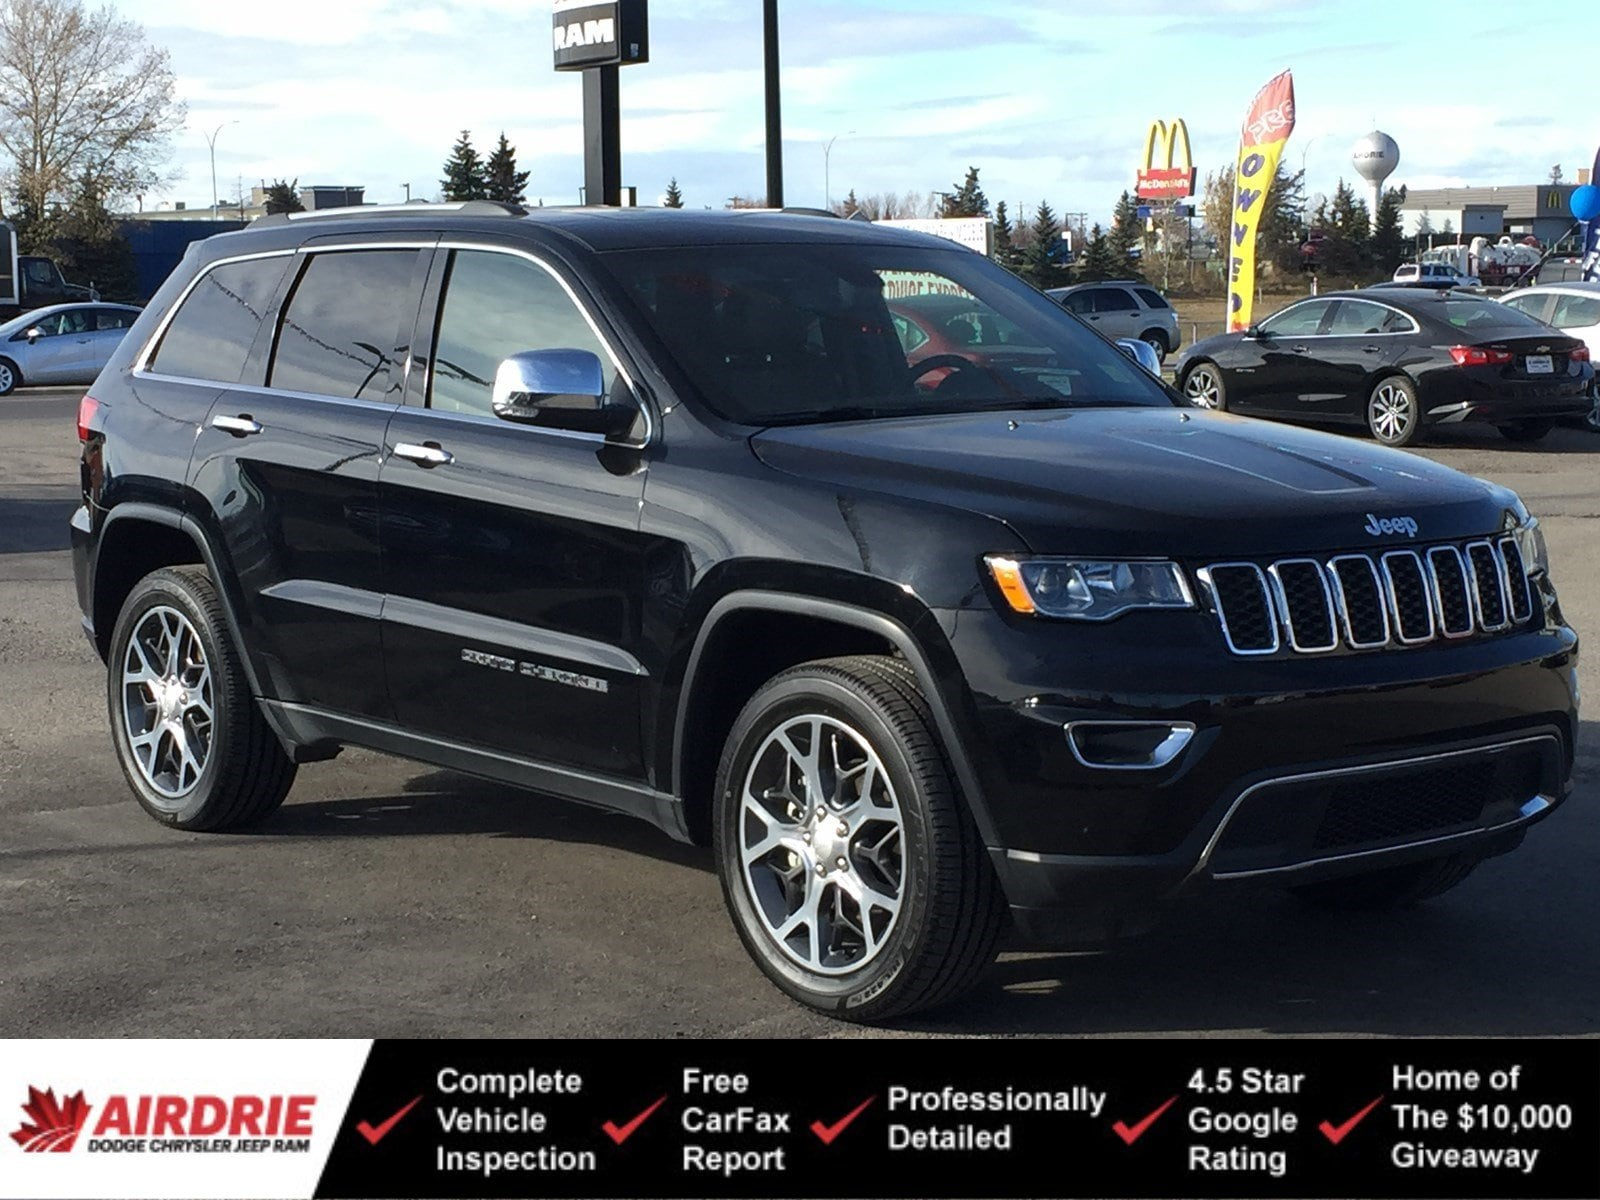 2019 Jeep Grand Cherokee Limited 4x4 - Low KMs! New Tires! Limited 4x4